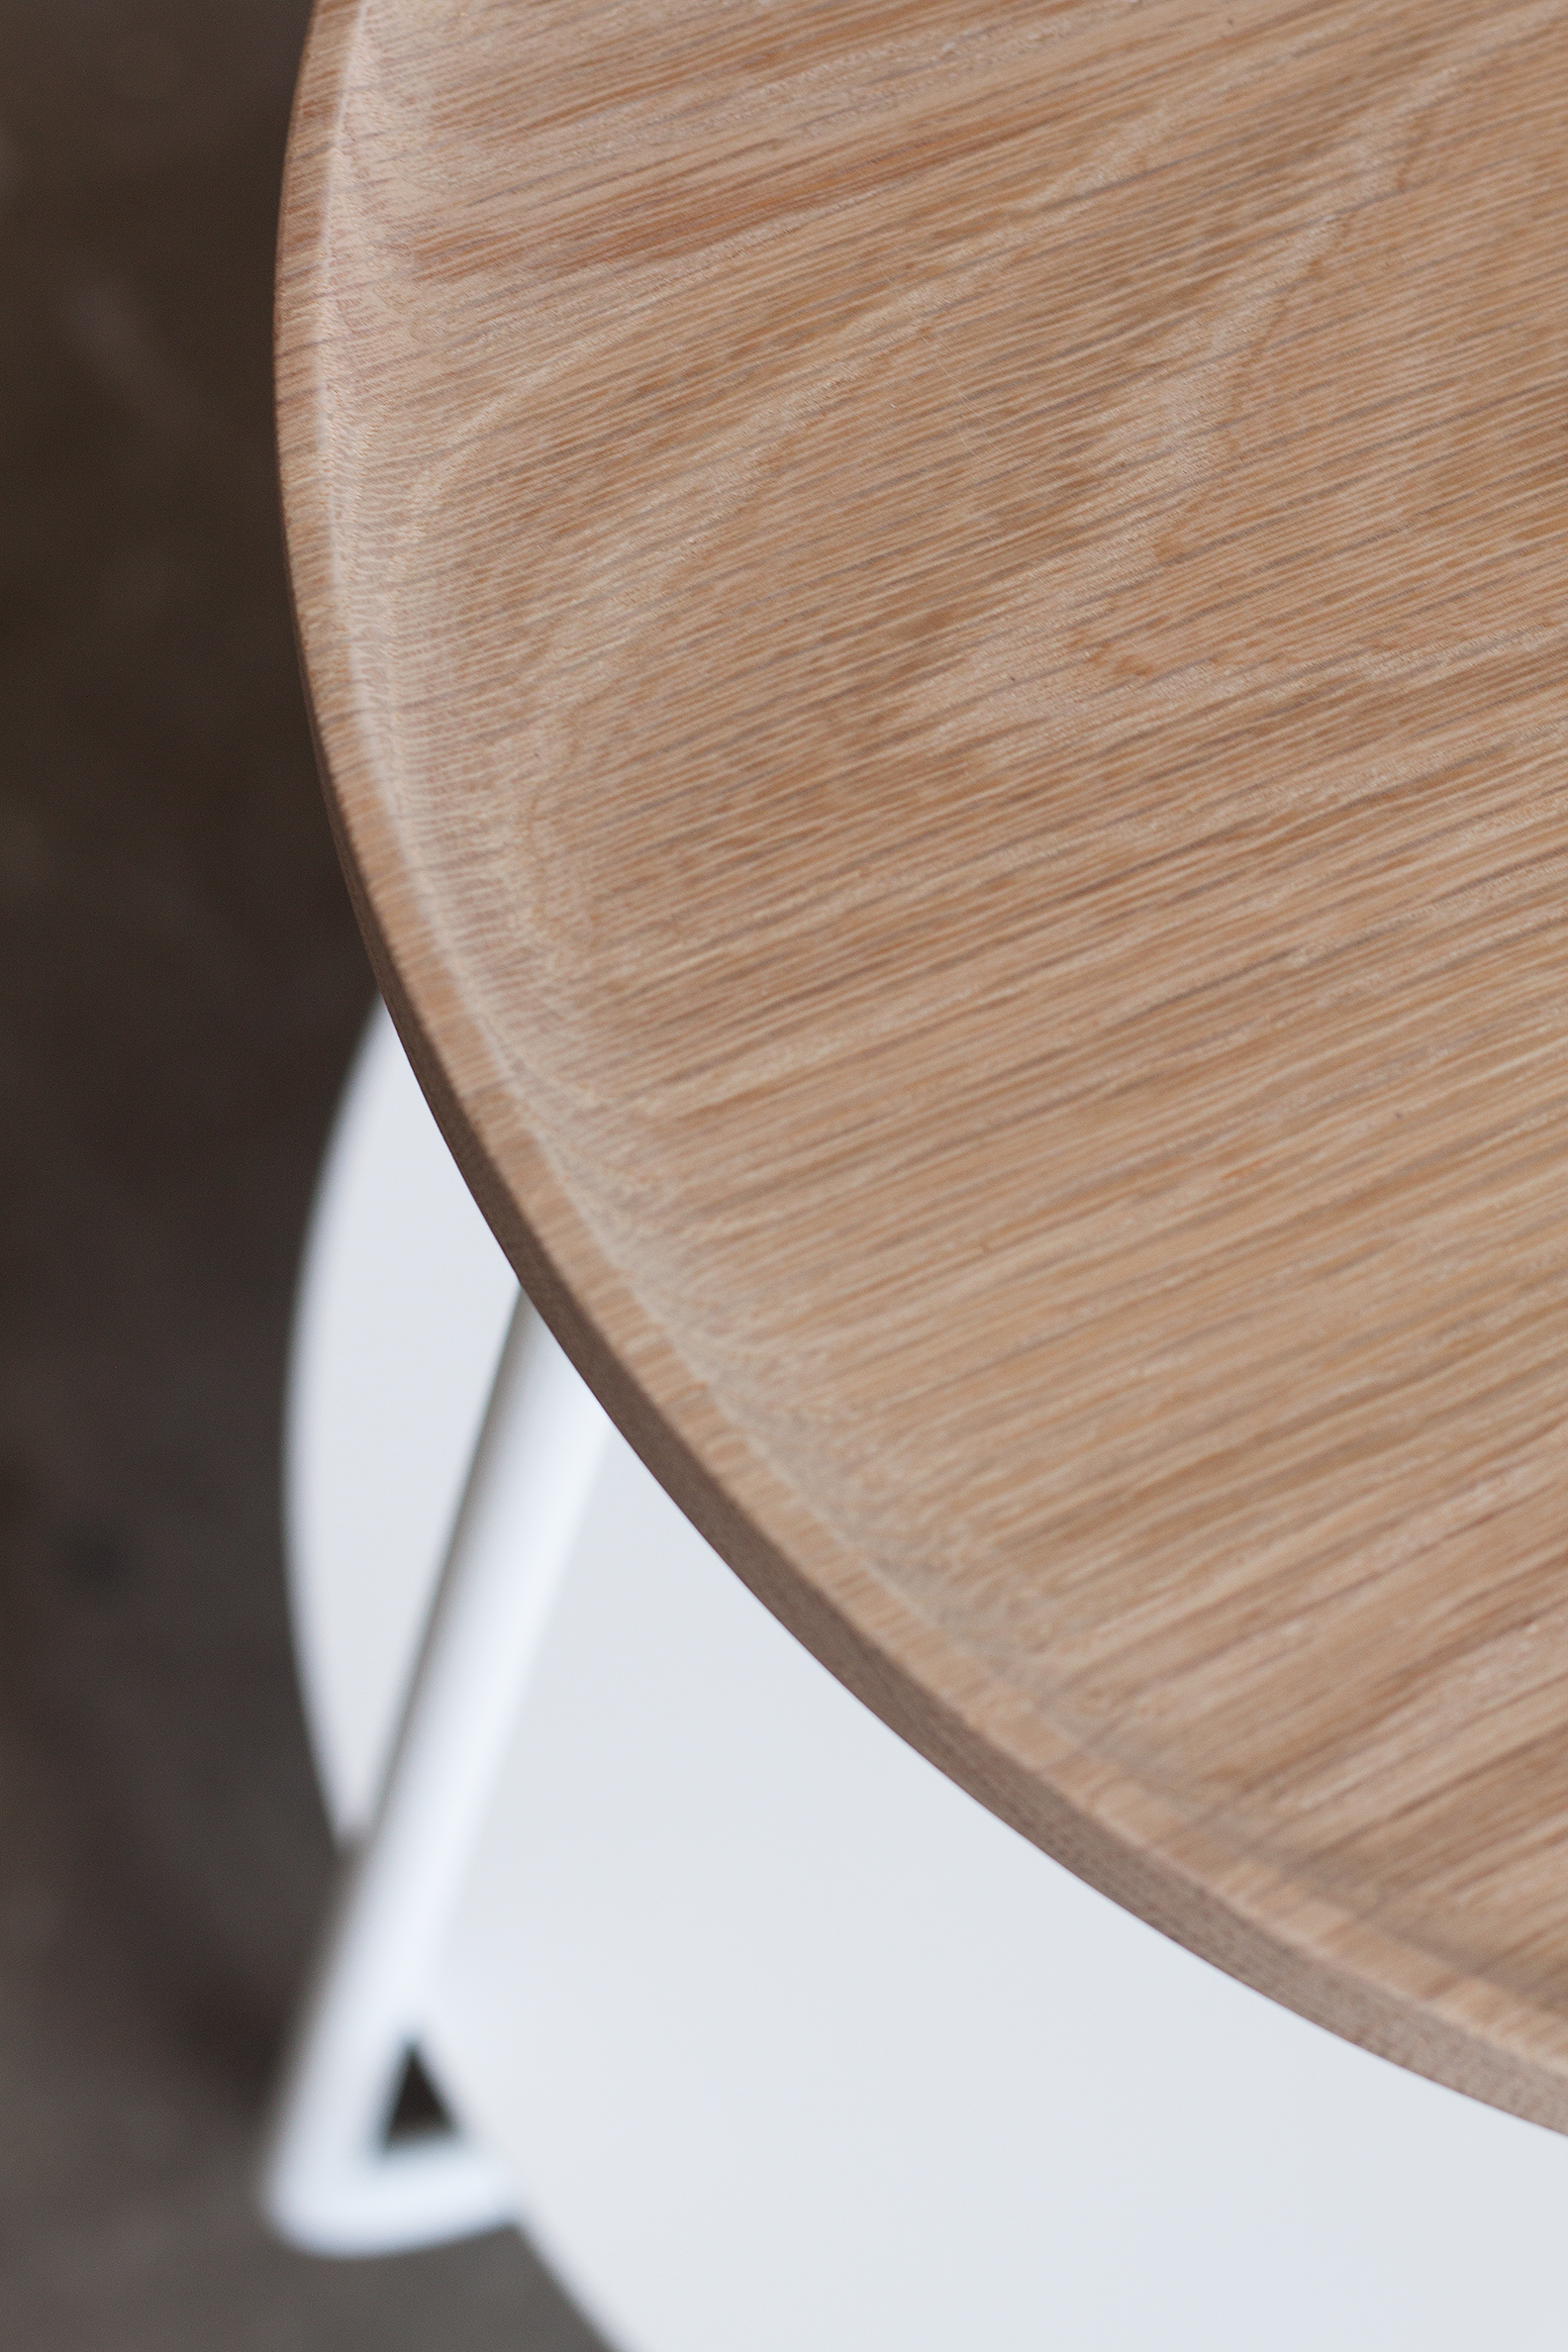 Lo side table by Mast Furniture. Modern, handmade furniture.